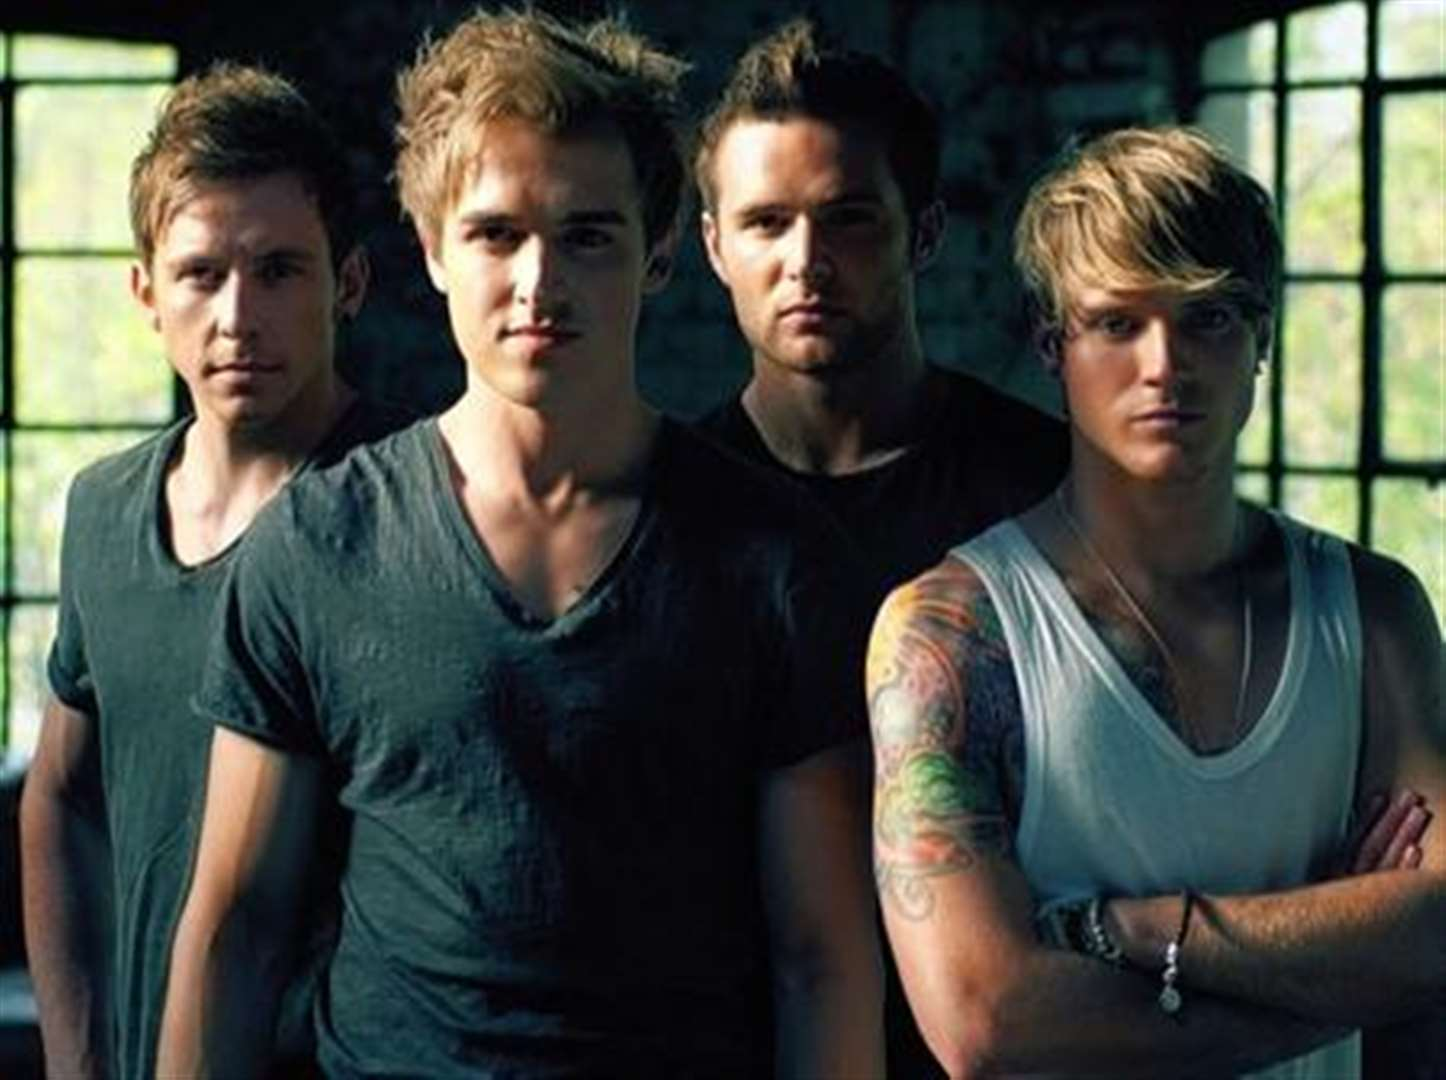 McFly to headline Kings Hill g